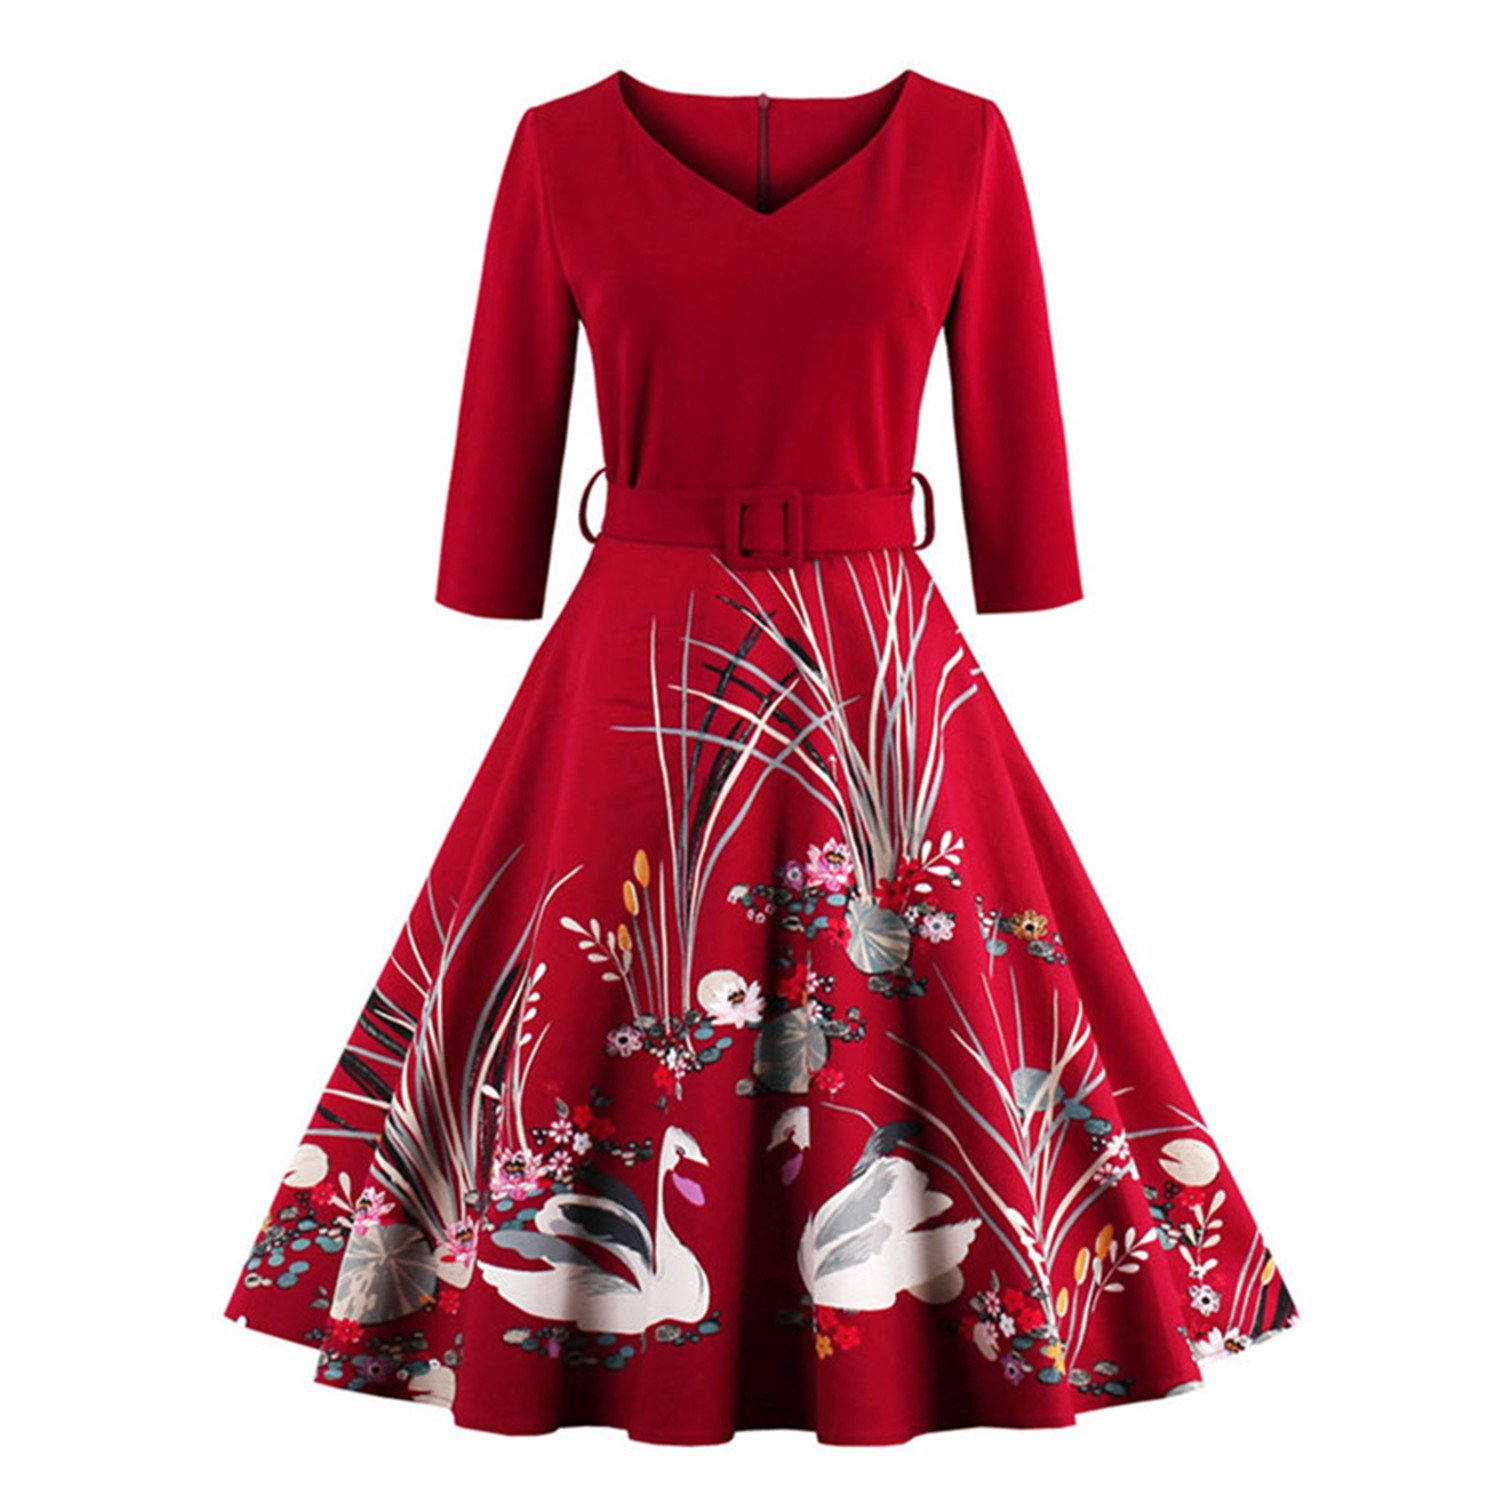 WINNER Vestidos Vintage Autumn dress Rockabilly 4XL plus size women clothing party dress Printed 60s Hepburn Casual Dress at Amazon Womens Clothing store: